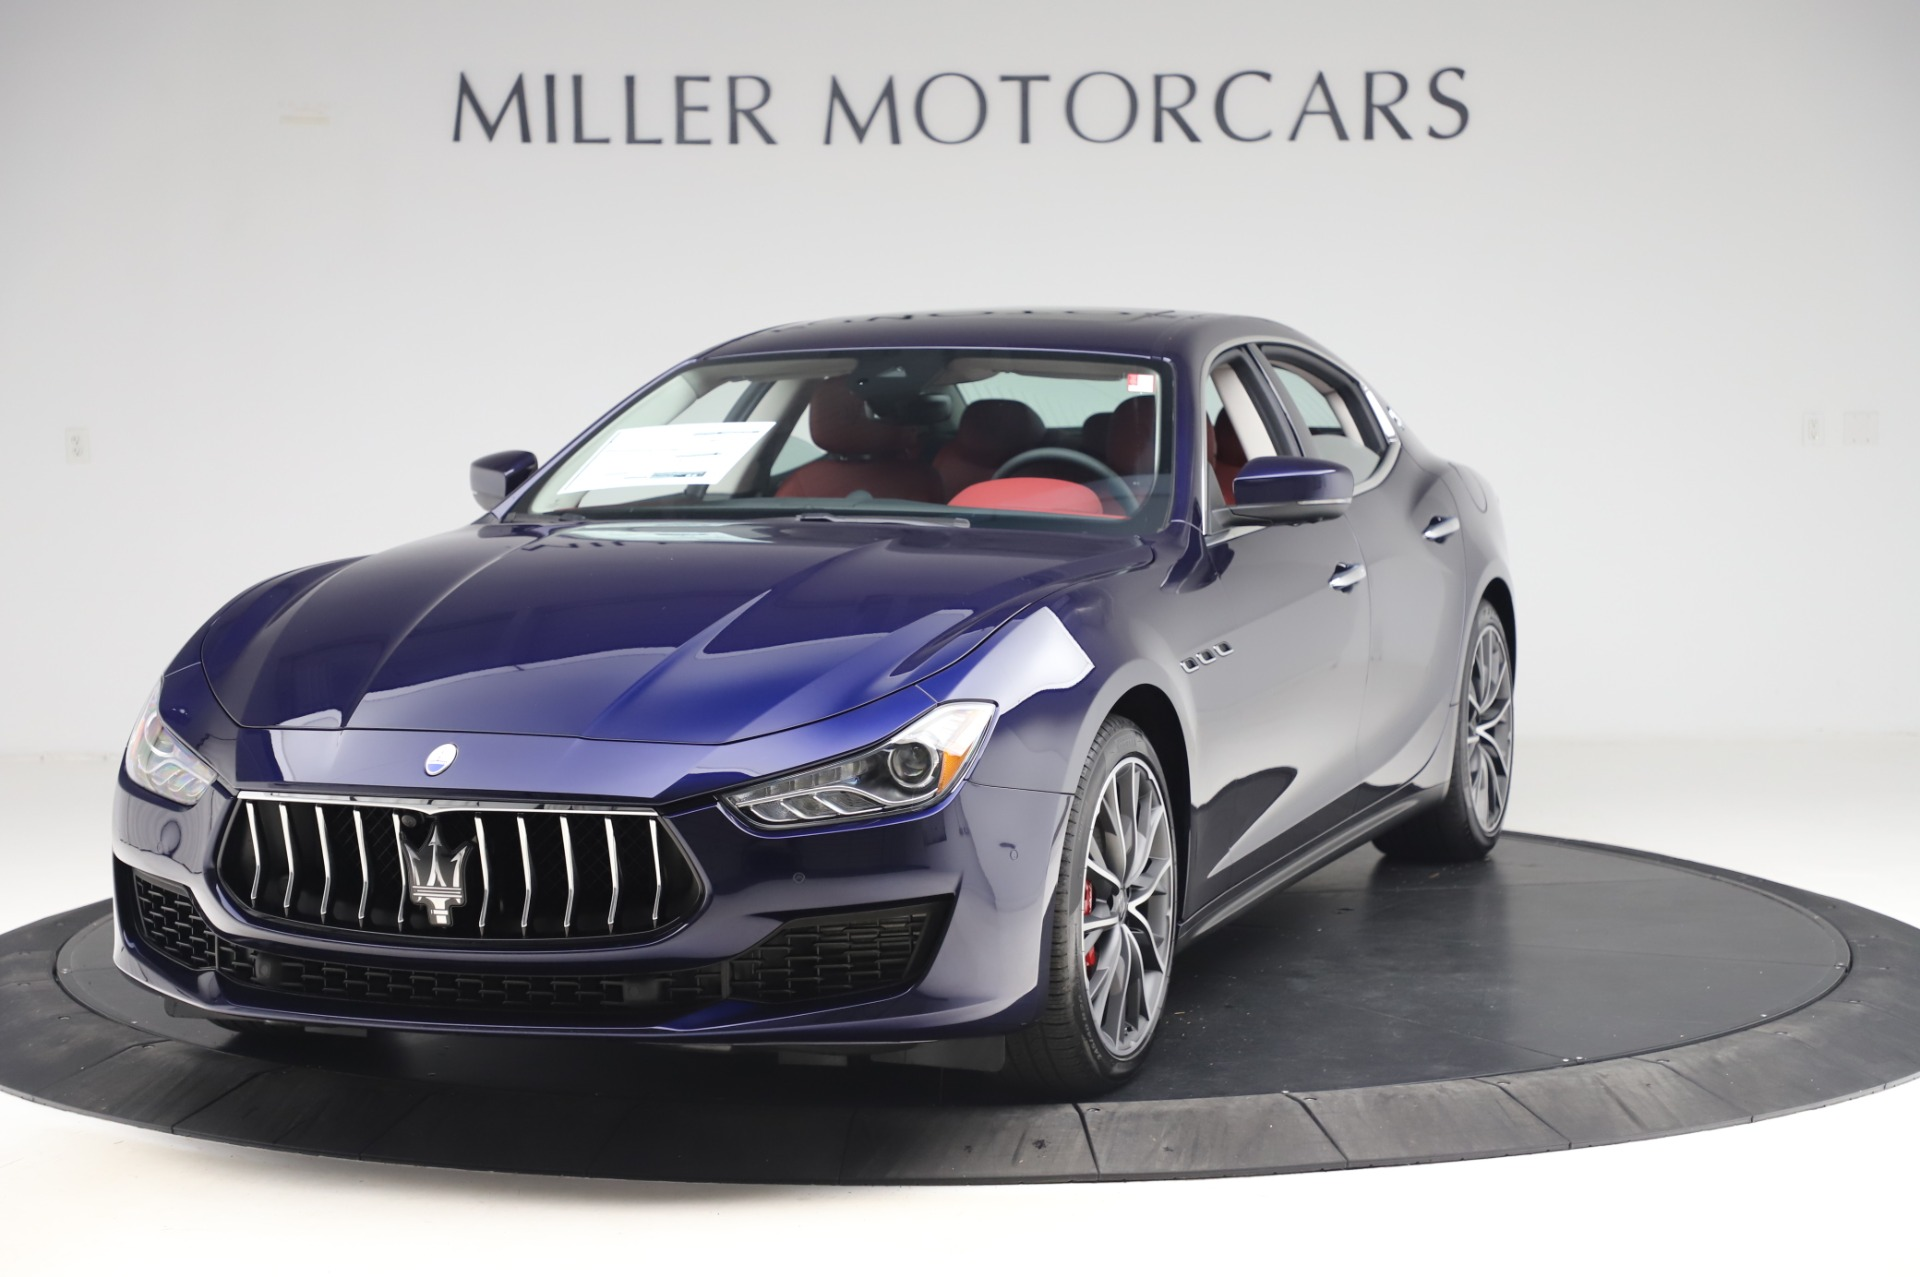 New 2020 Maserati Ghibli S Q4 for sale Sold at Maserati of Westport in Westport CT 06880 1